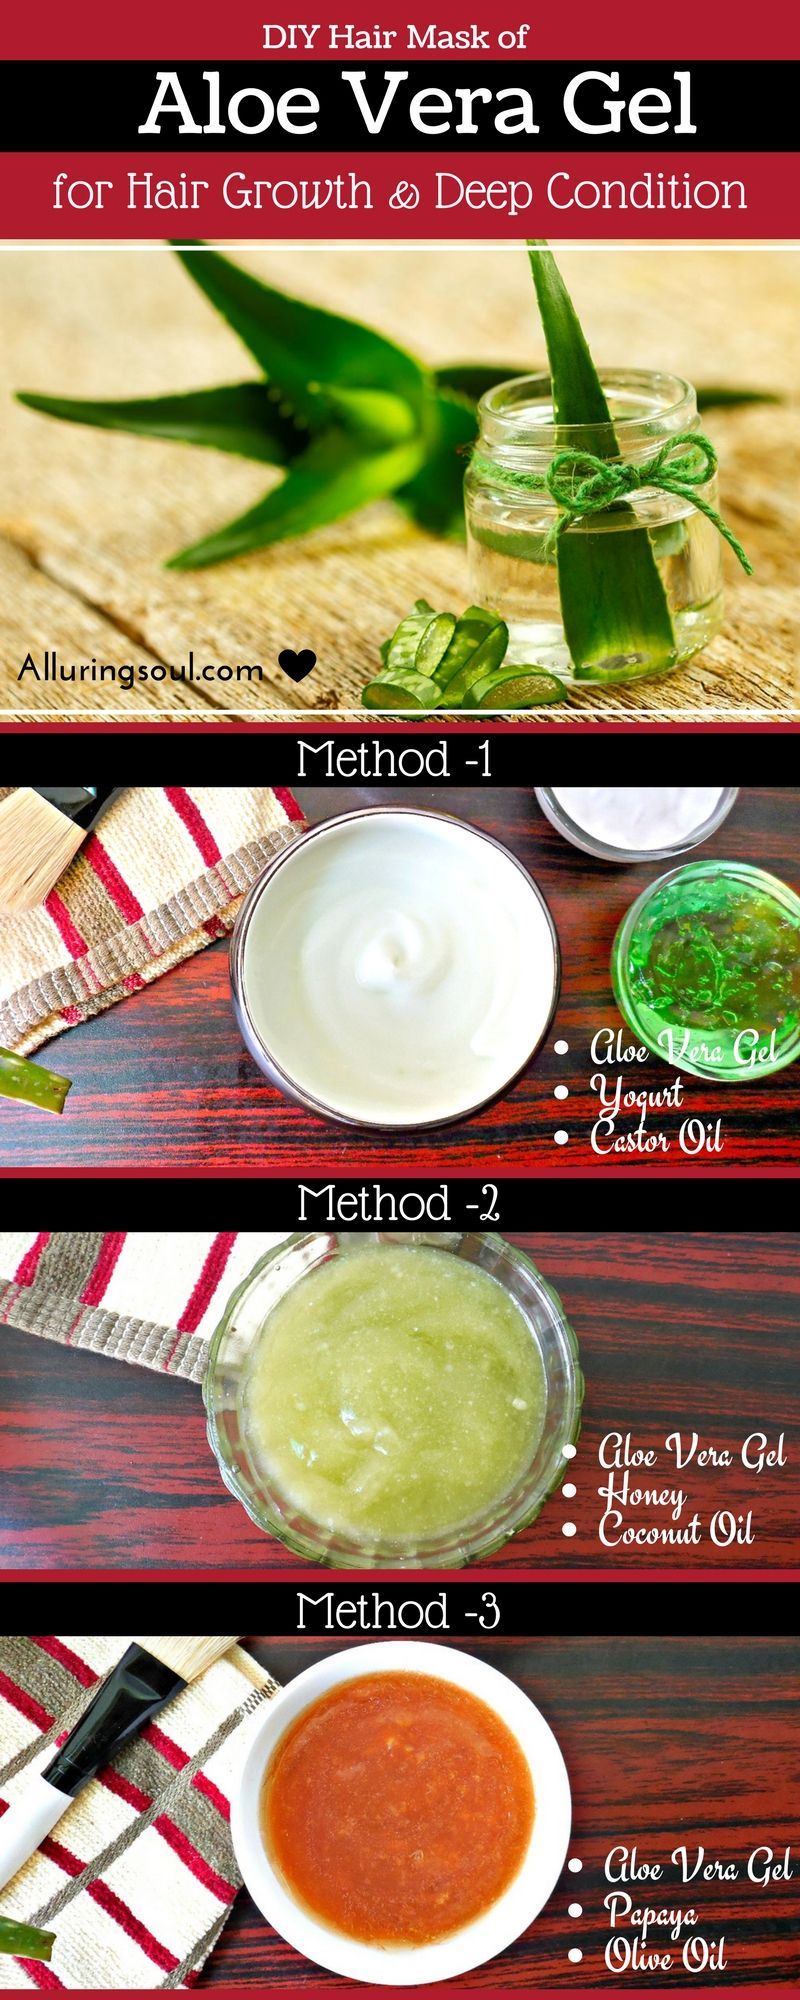 Top 3 DIY Hair Mask Of Aloe Vera Gel For Hair Growth And